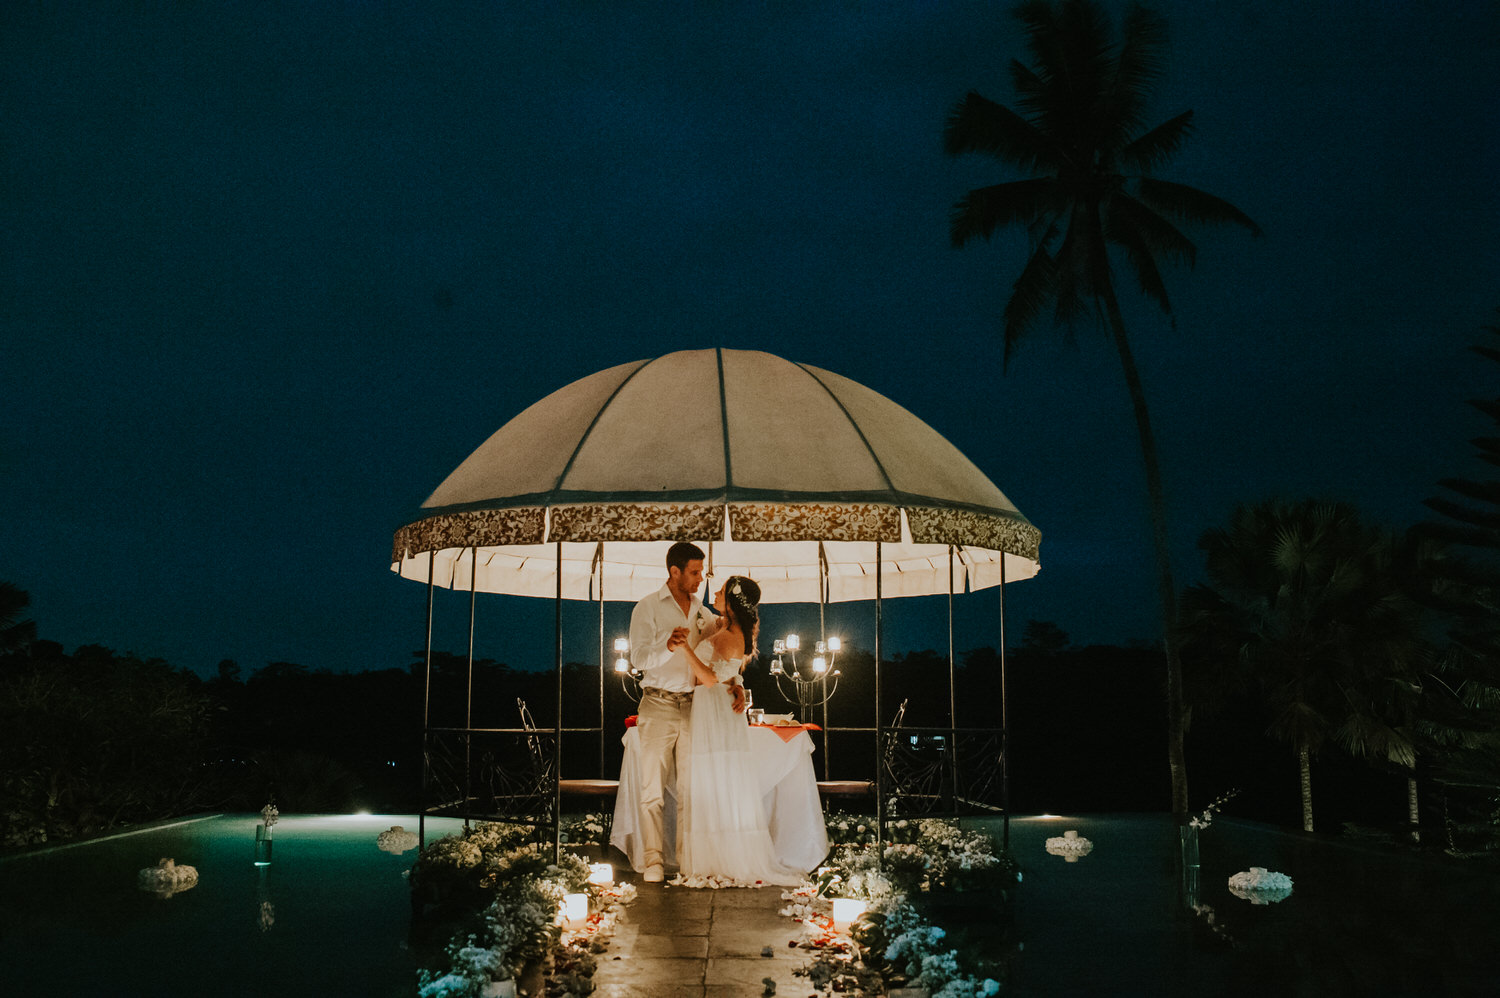 bali wedding - elopement - ubud wedding - diktatphotography - olga + Jason - 81